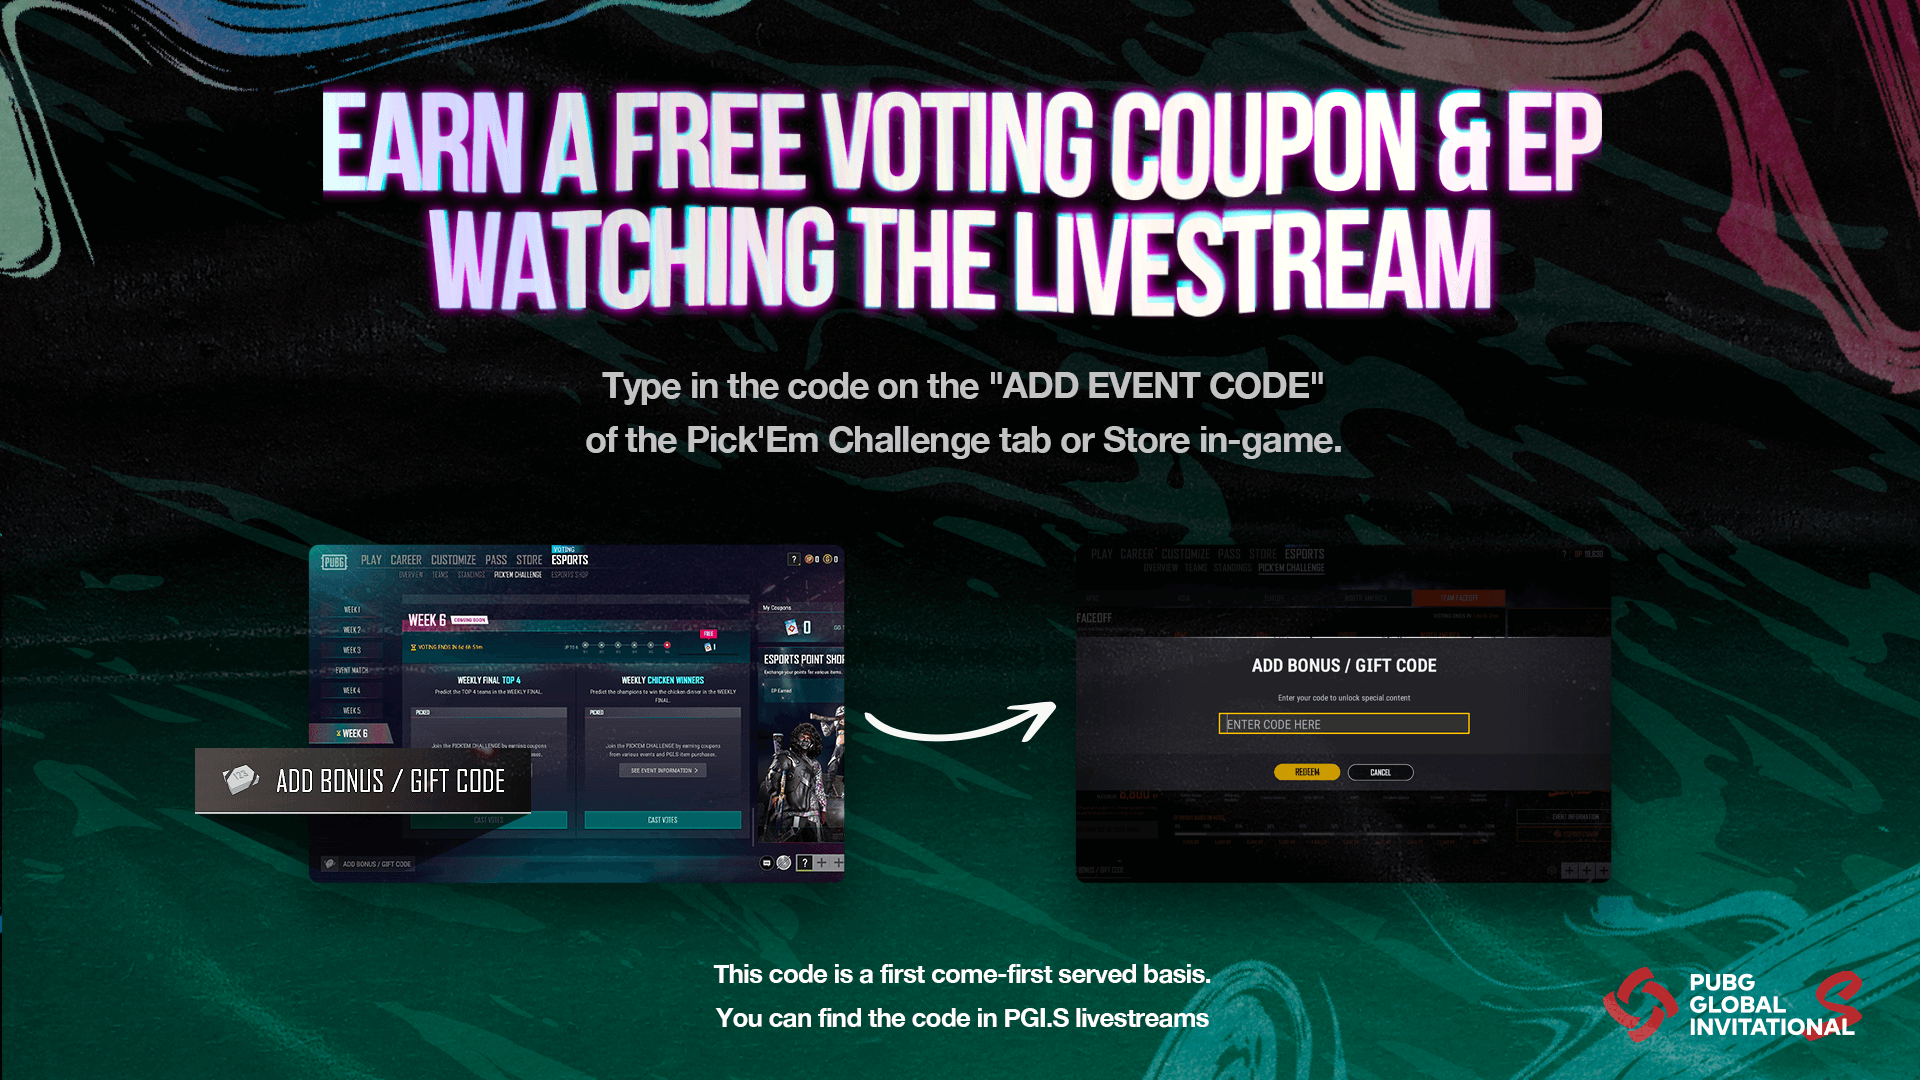 A-FREE-VOTING-COUPON-IN-LIVESTREAM_3 (1).png